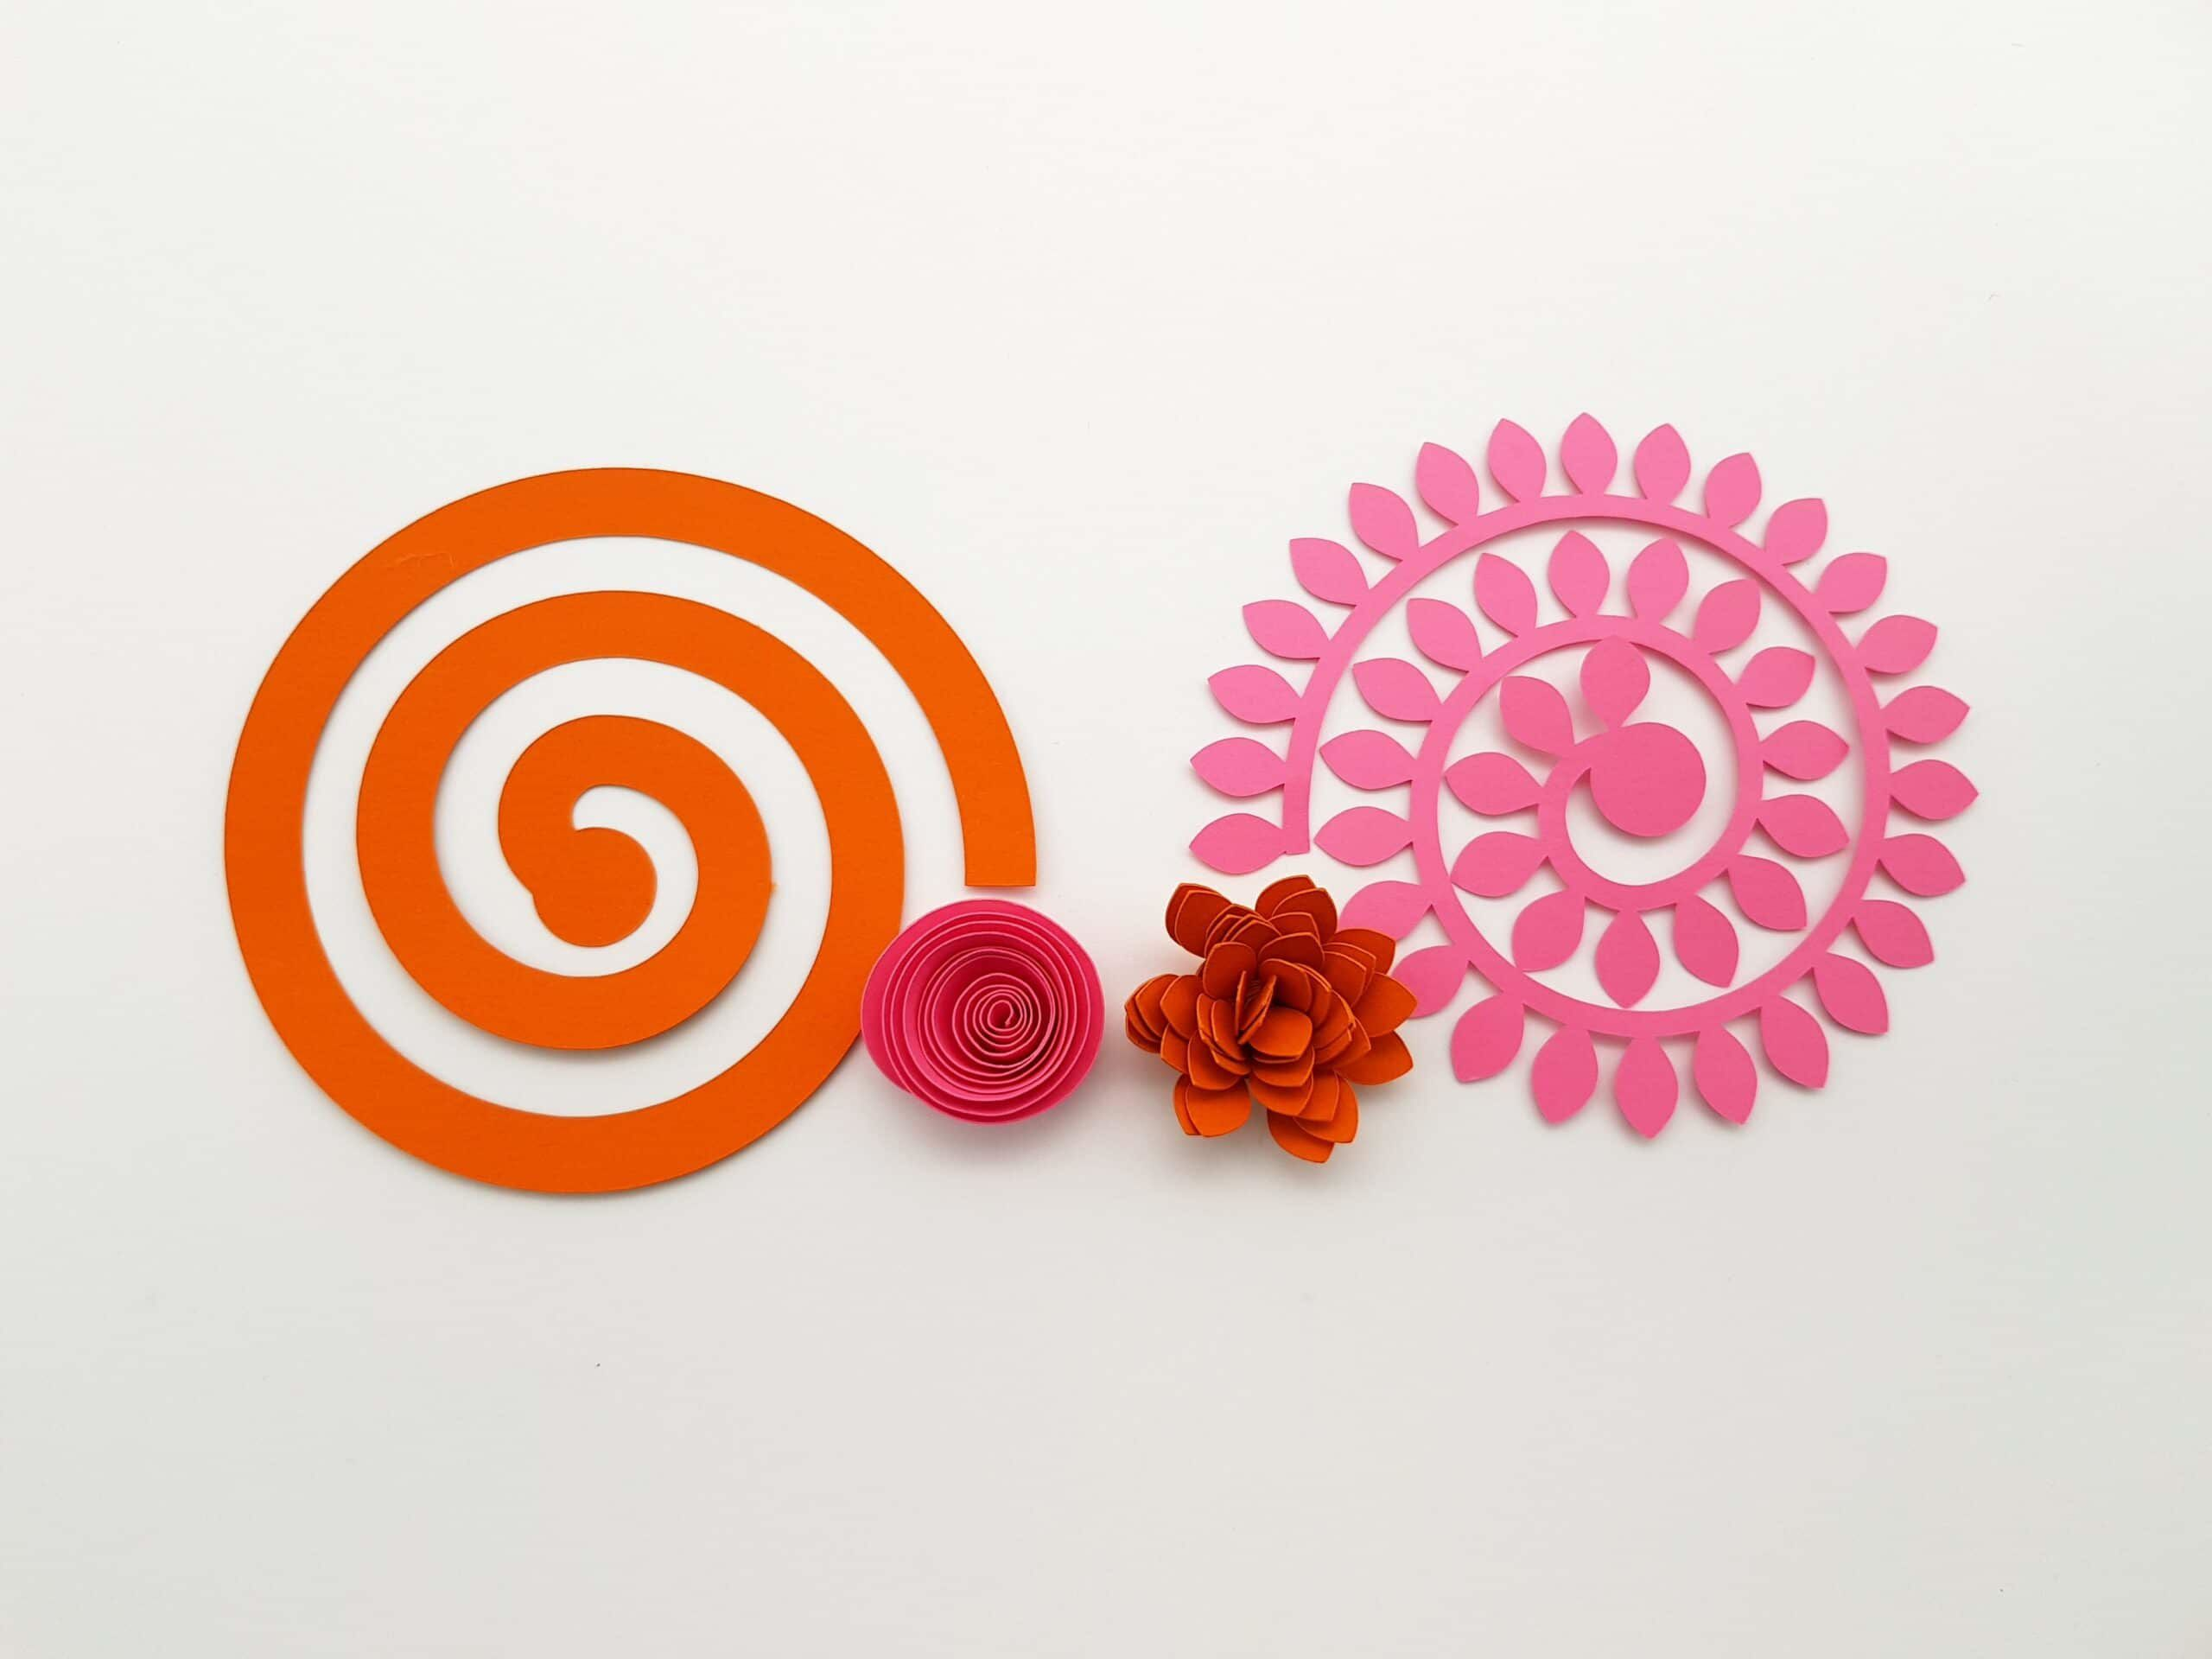 006 Unique Free Rolled Paper Flower Template For Cricut Image Full